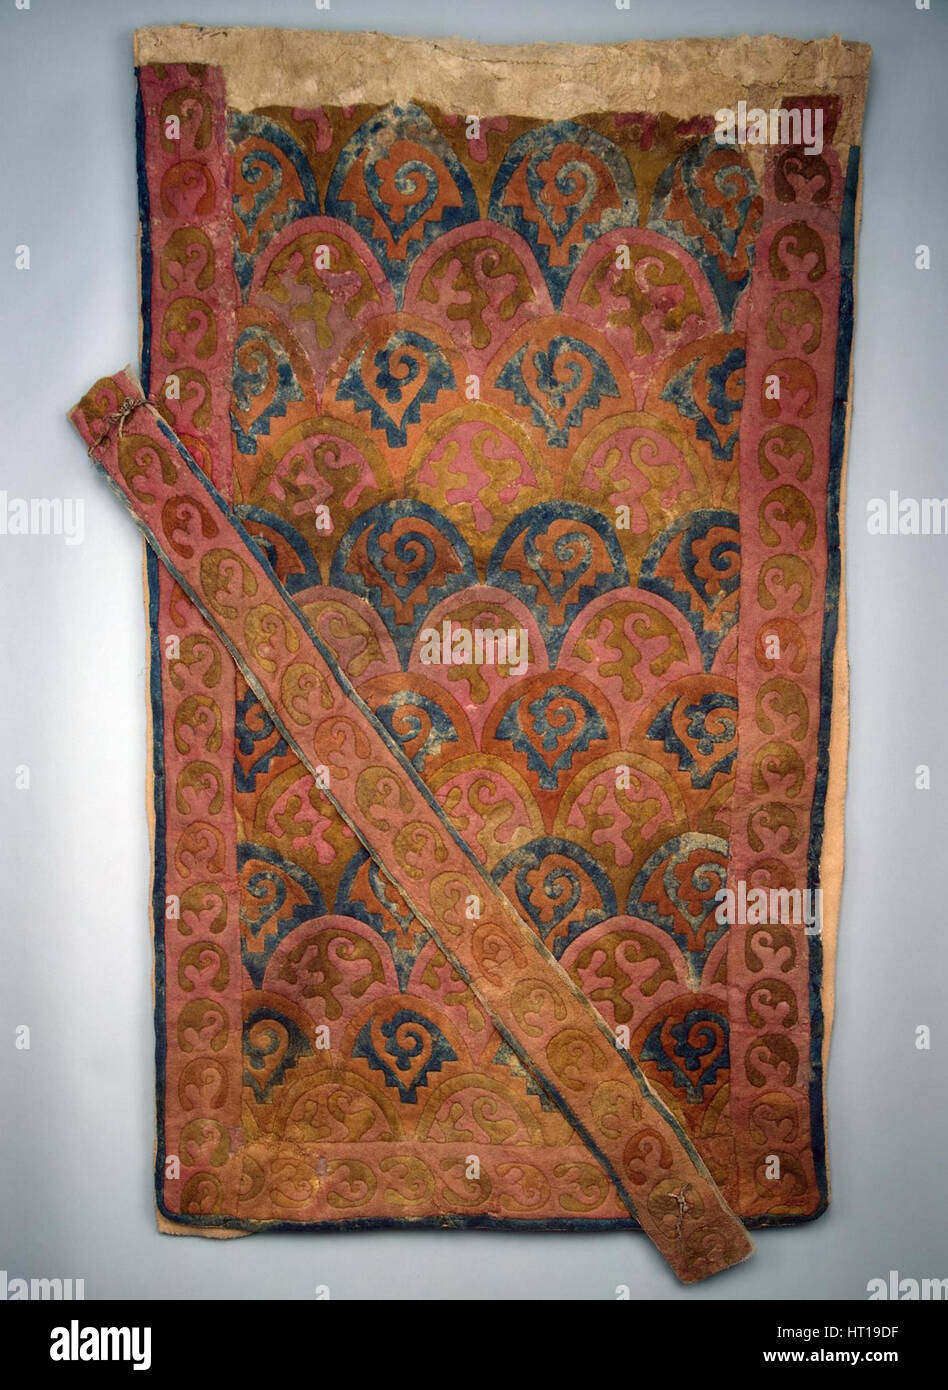 Saddle cloth, 5th-4th century BC. Artist: Ancient Altaian, Pazyryk Burial Mounds - Stock Image